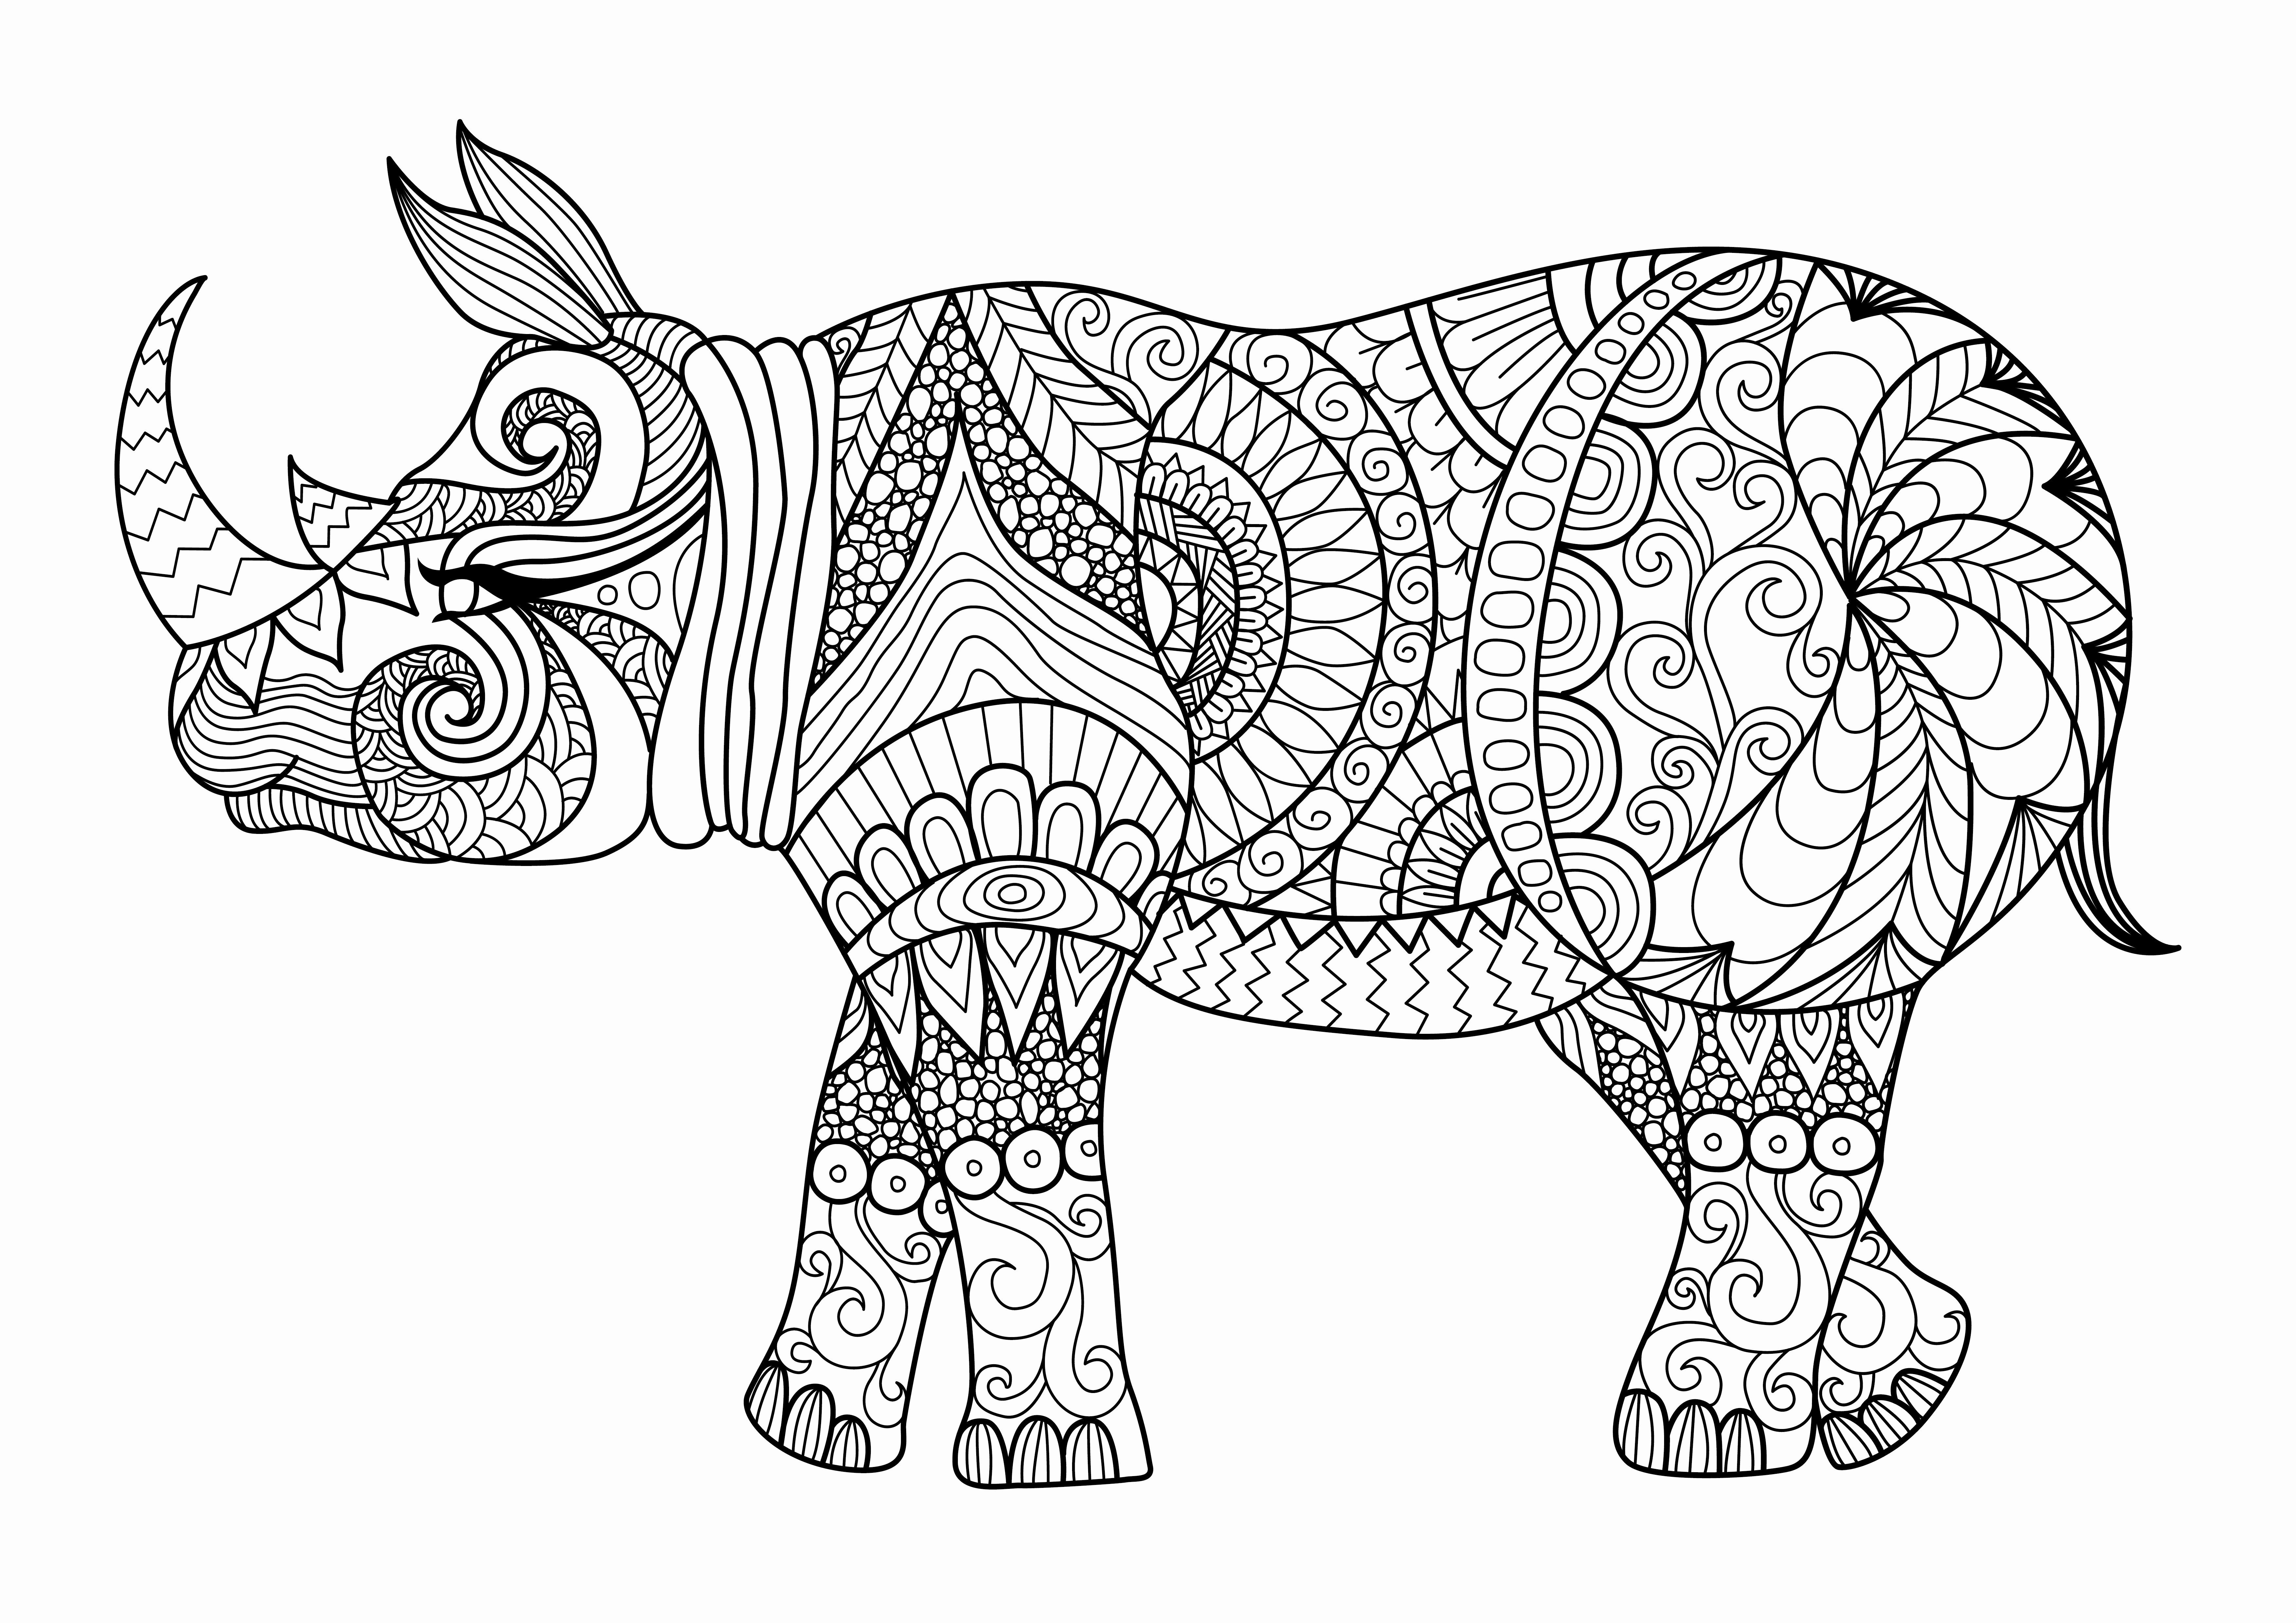 Coloring Wild Animals Inspirational Awesome Extinct Animals Book Endangered Species An Animal Coloring Pages Farm Animal Coloring Pages Animal Coloring Books